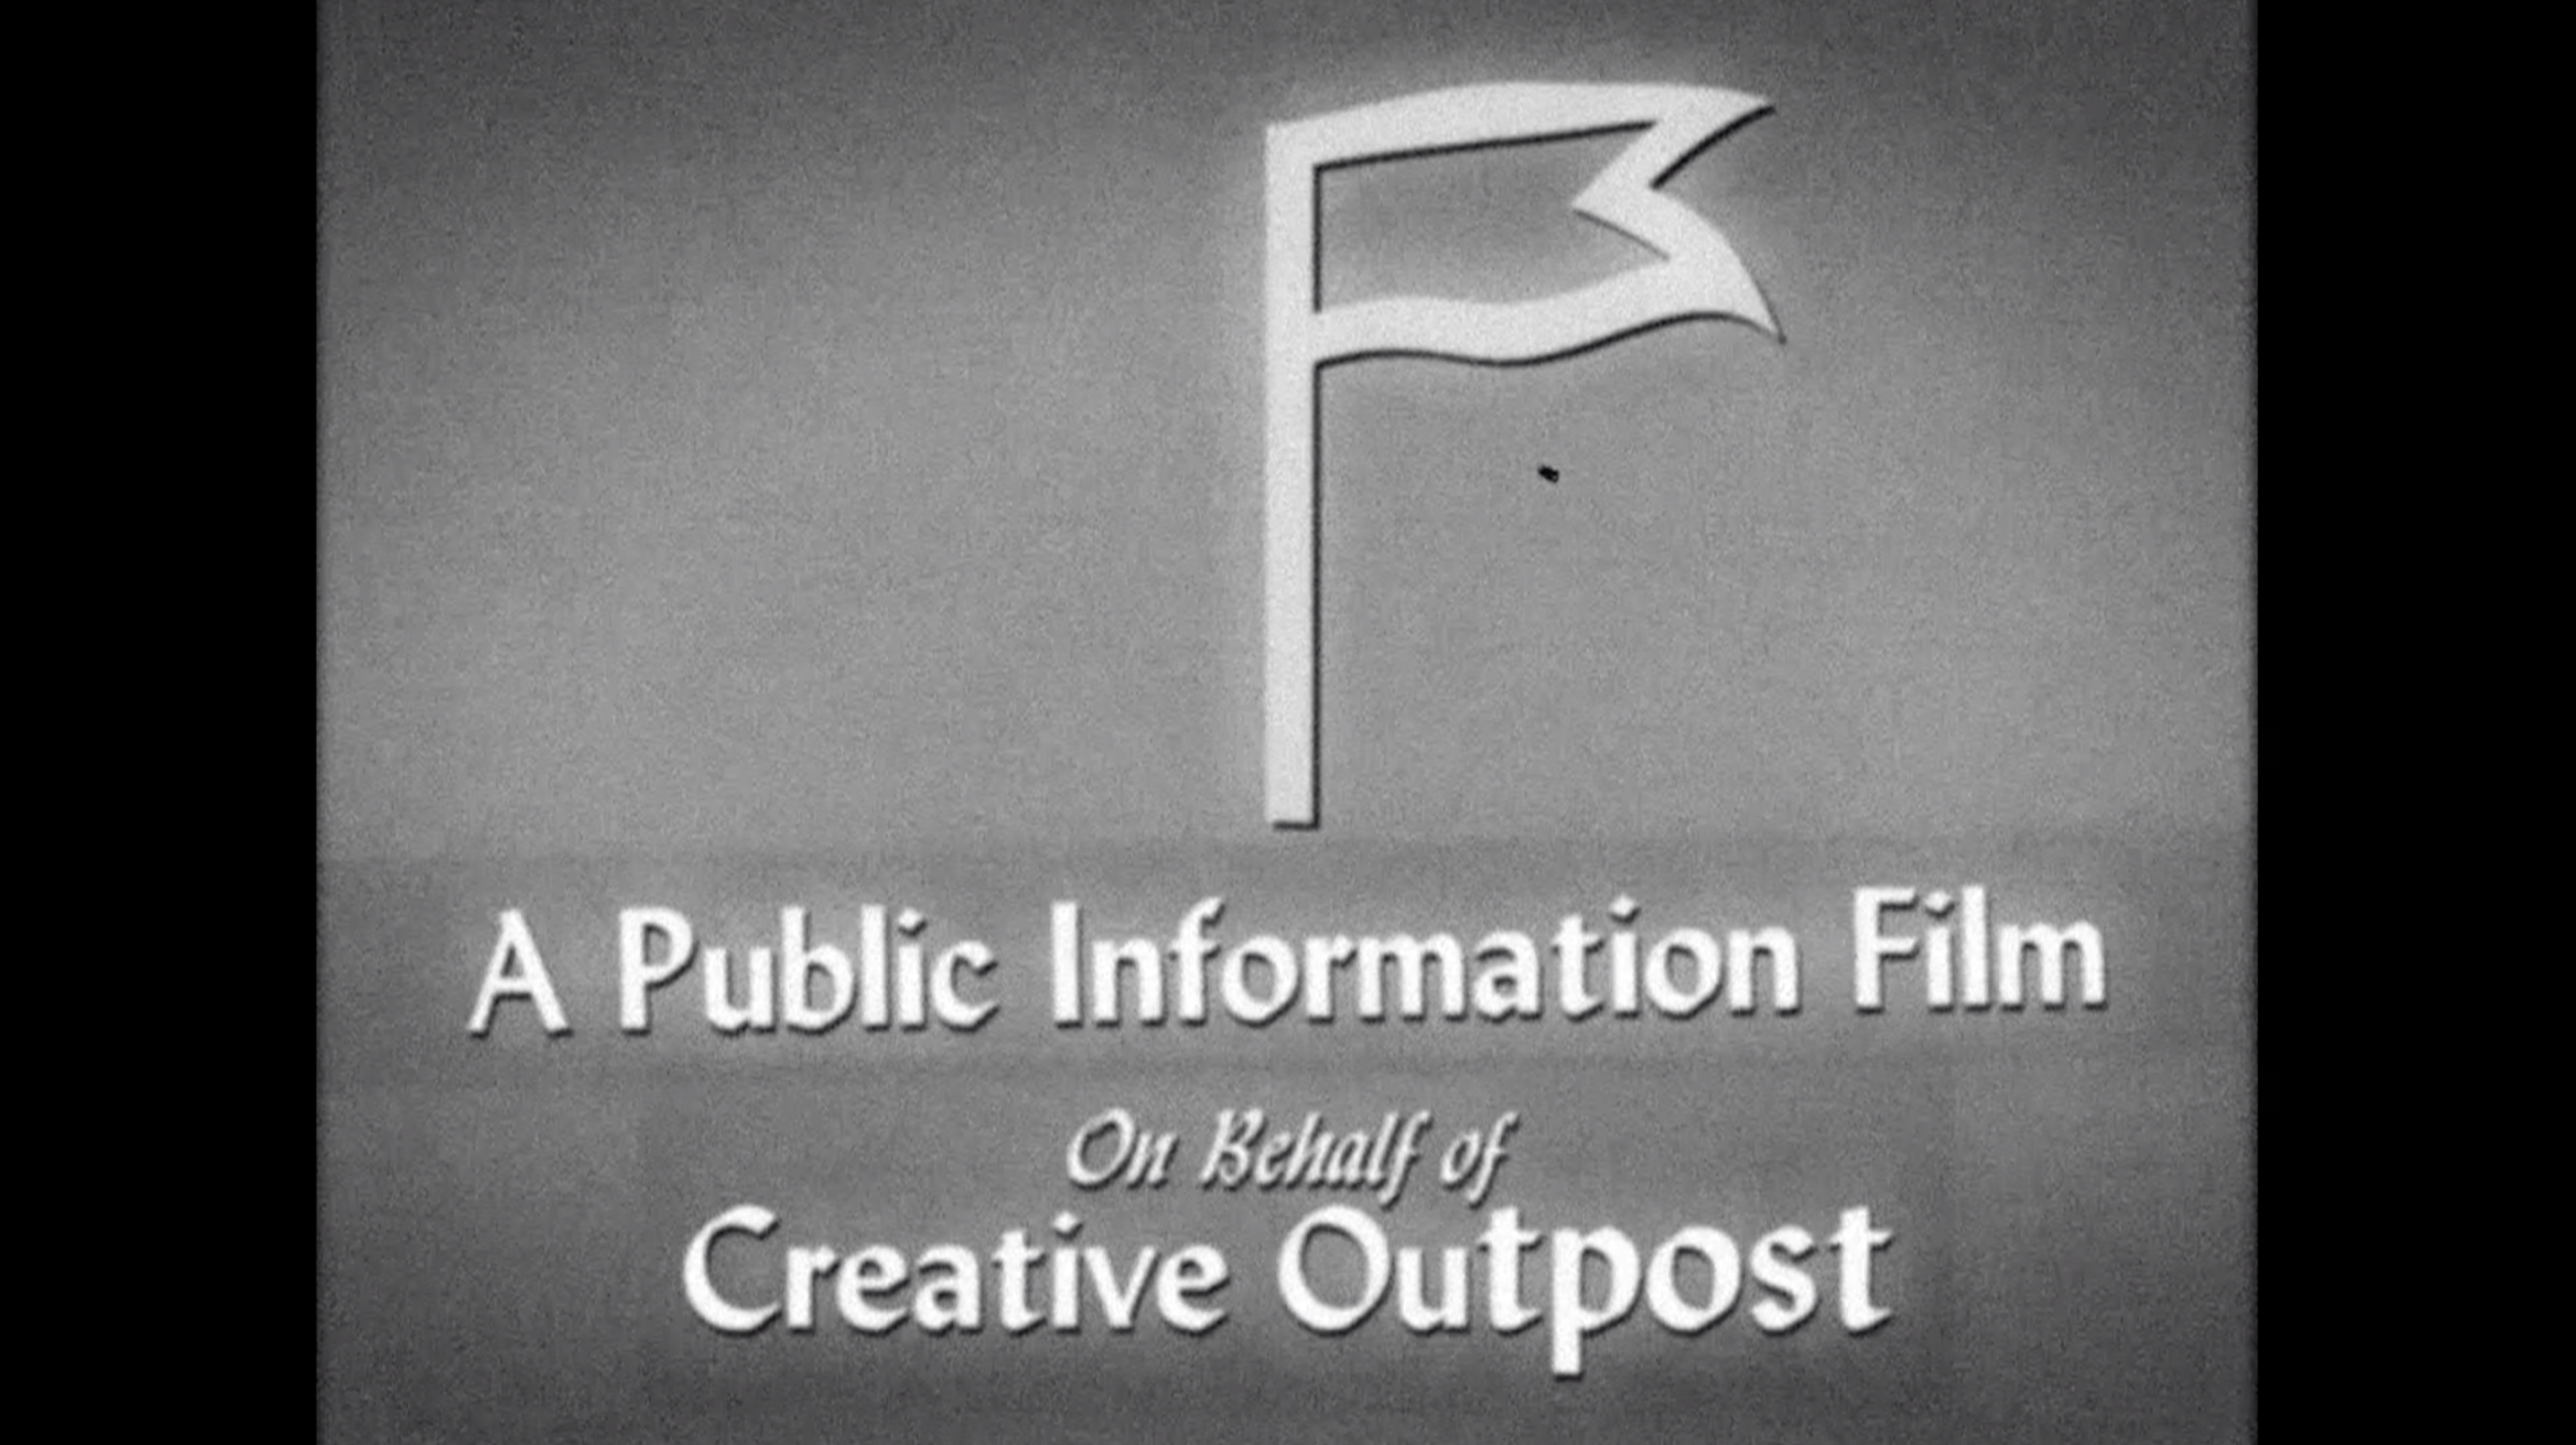 Creative Outpost Releases Tongue-in-Cheek Public Information Film